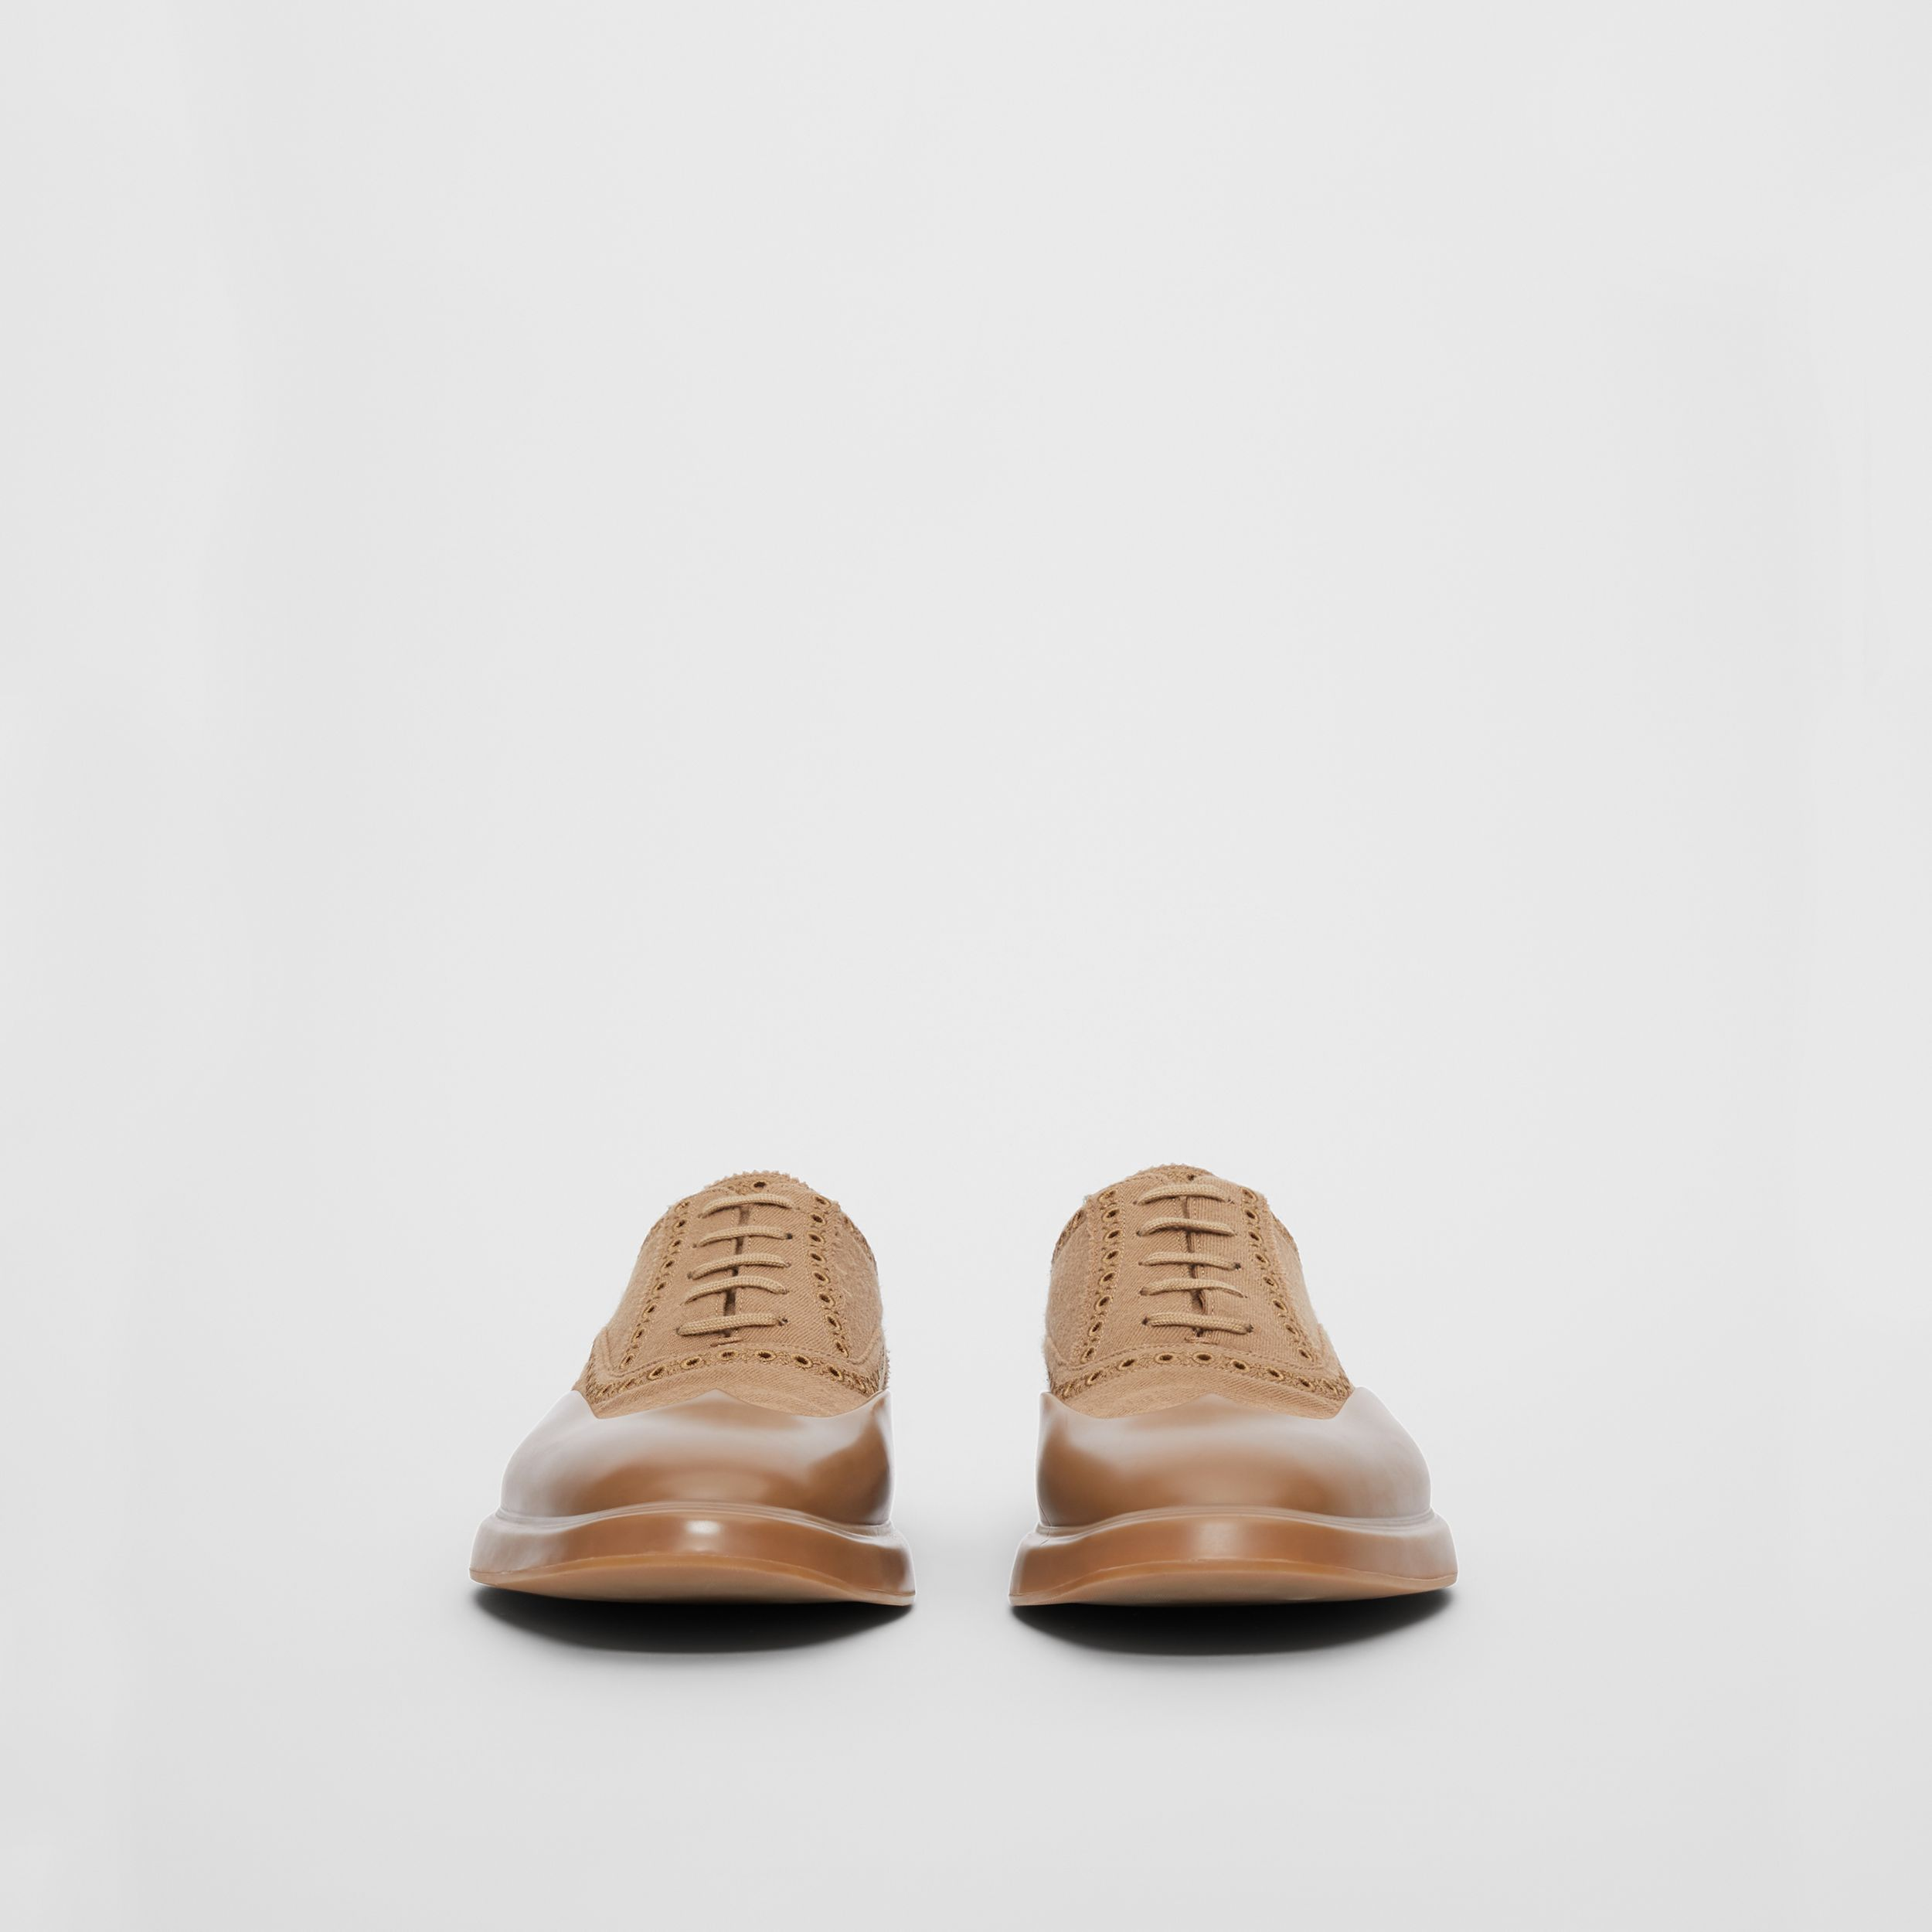 Toe Cap Detail Wool Oxford Brogues in Warm Camel - Men | Burberry Hong Kong S.A.R - 4